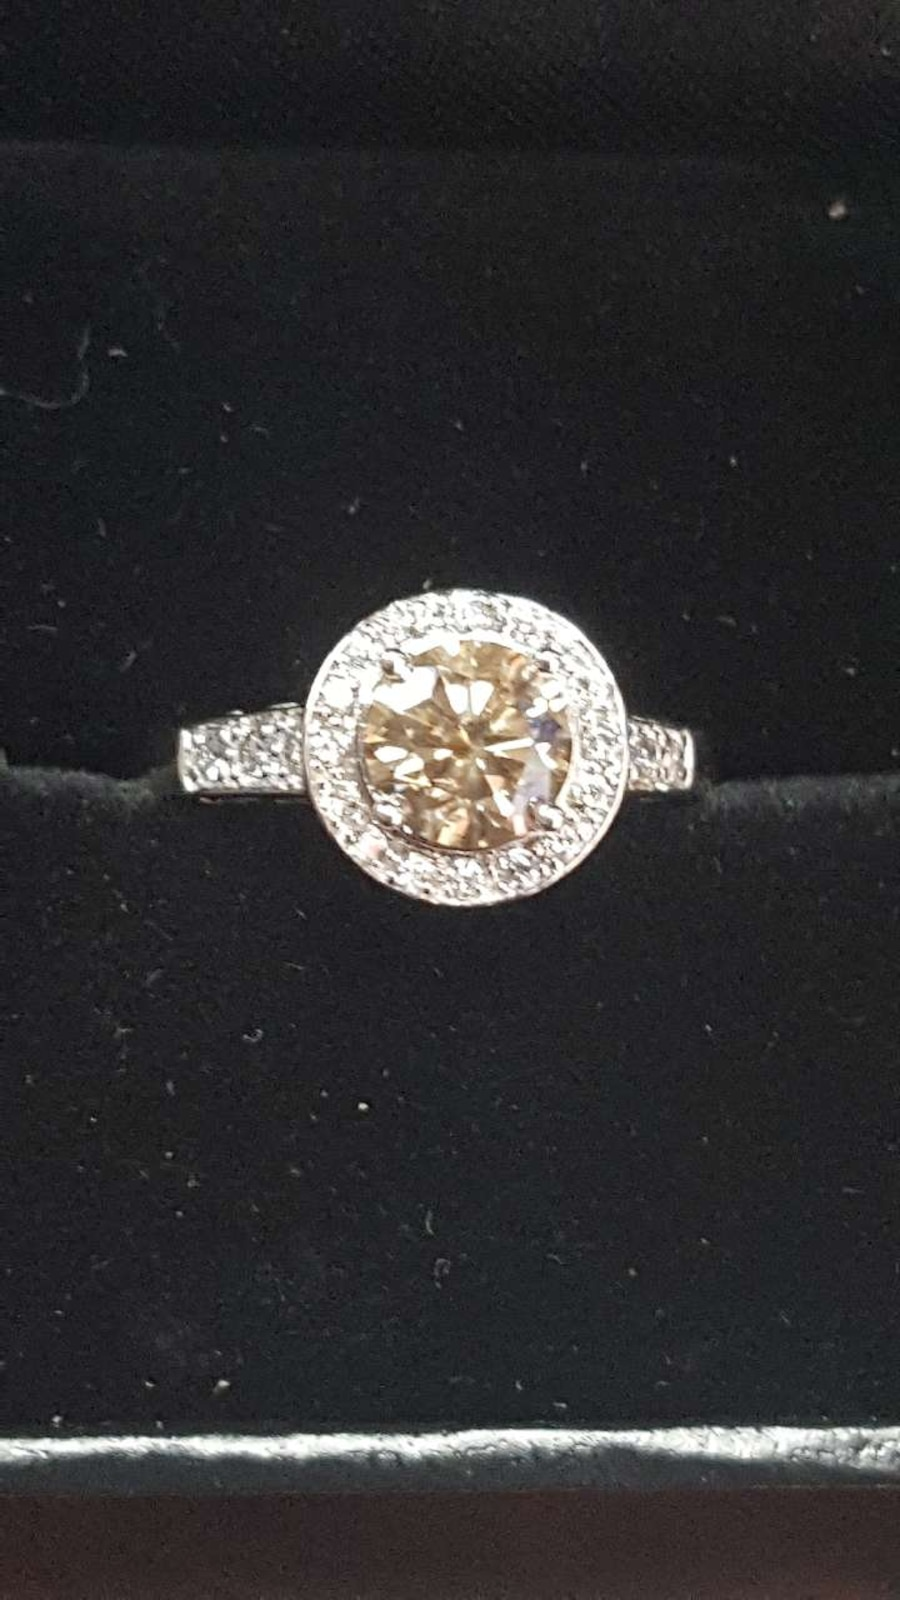 1kt diamond ring 14k white gold appraisal $2950 in Bakersfield letgo